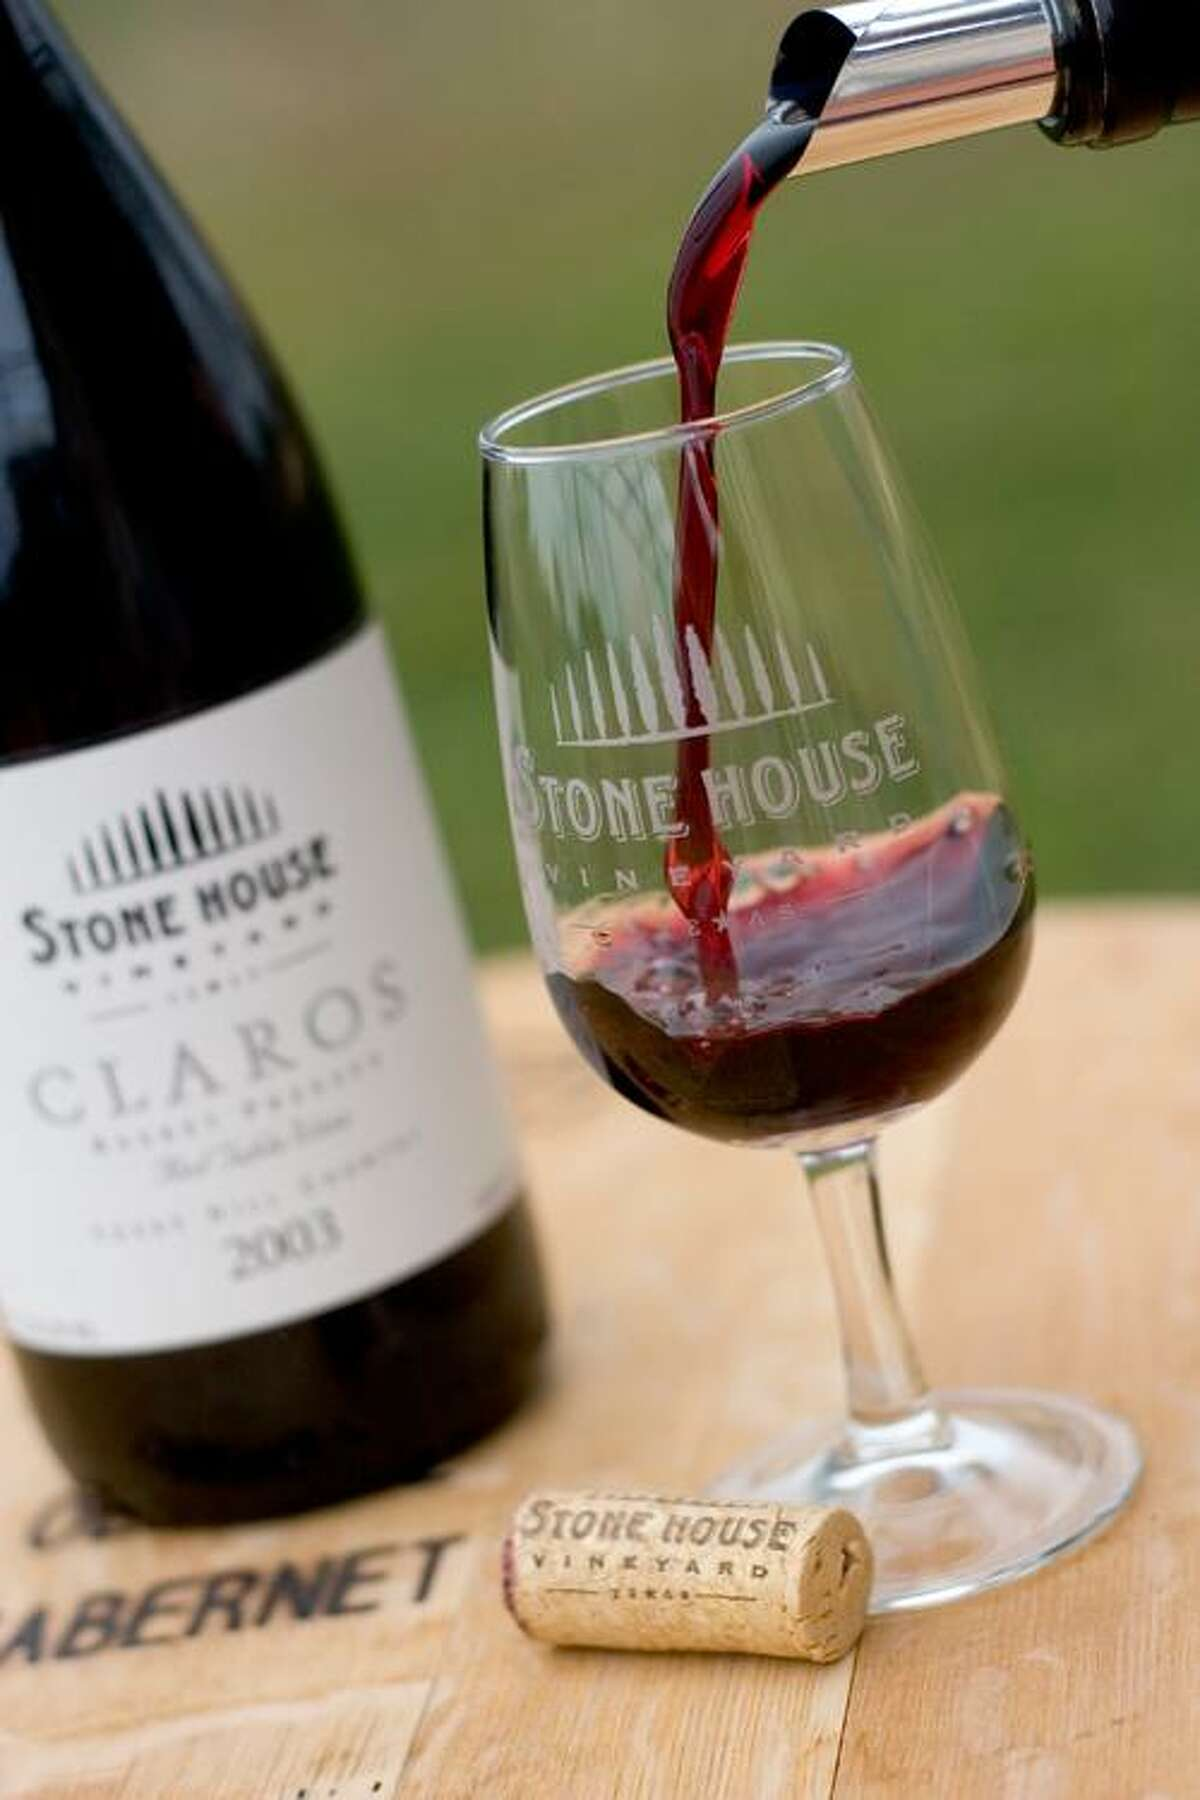 Claros, one of the signature wines of Stone House Vineyard